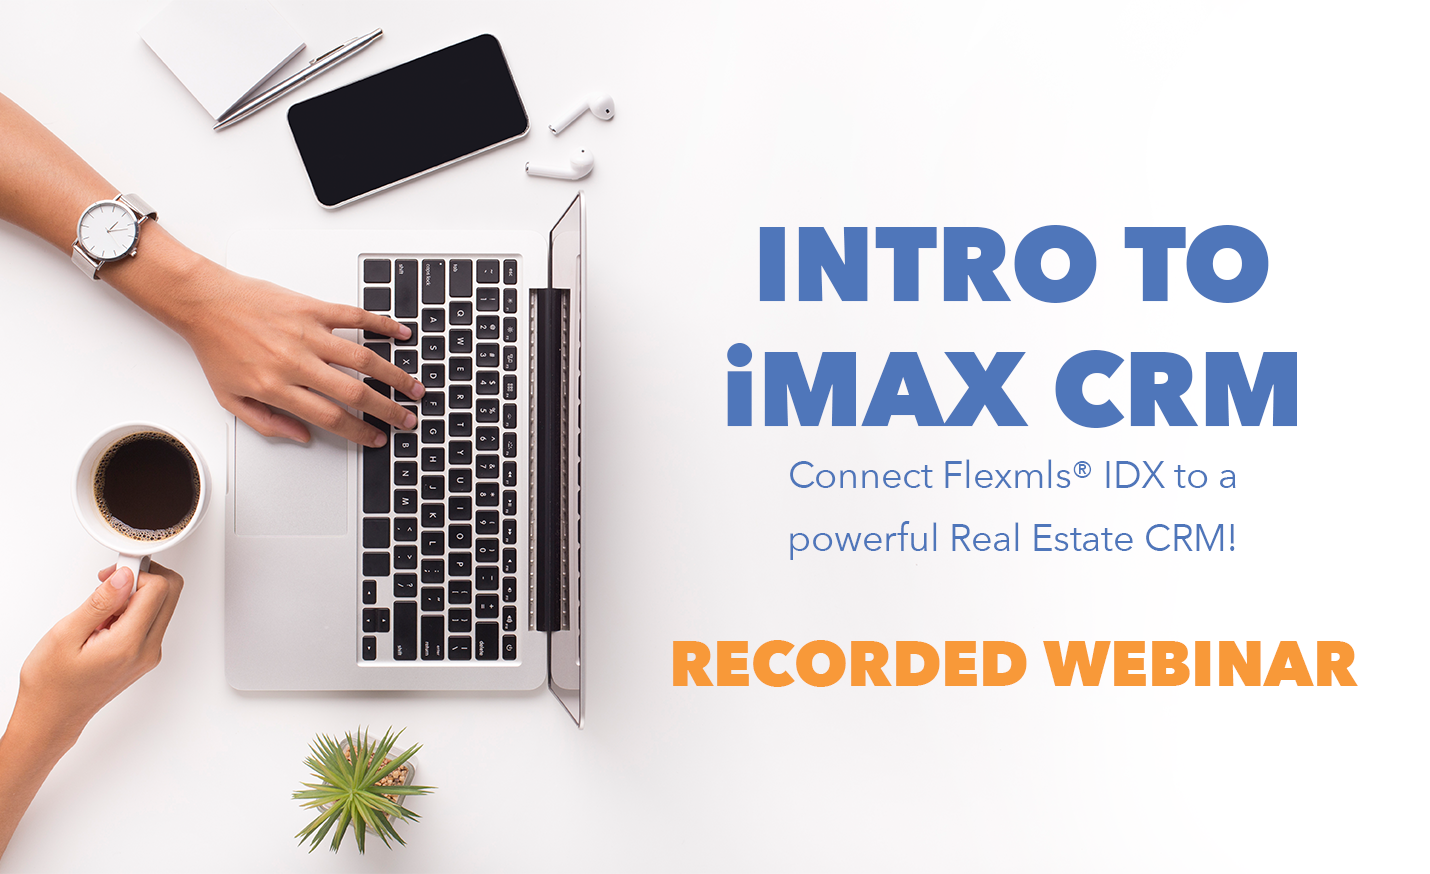 FBS Products Recorded Webinar Intro to iMax CRM connected to the Flexmls Platform